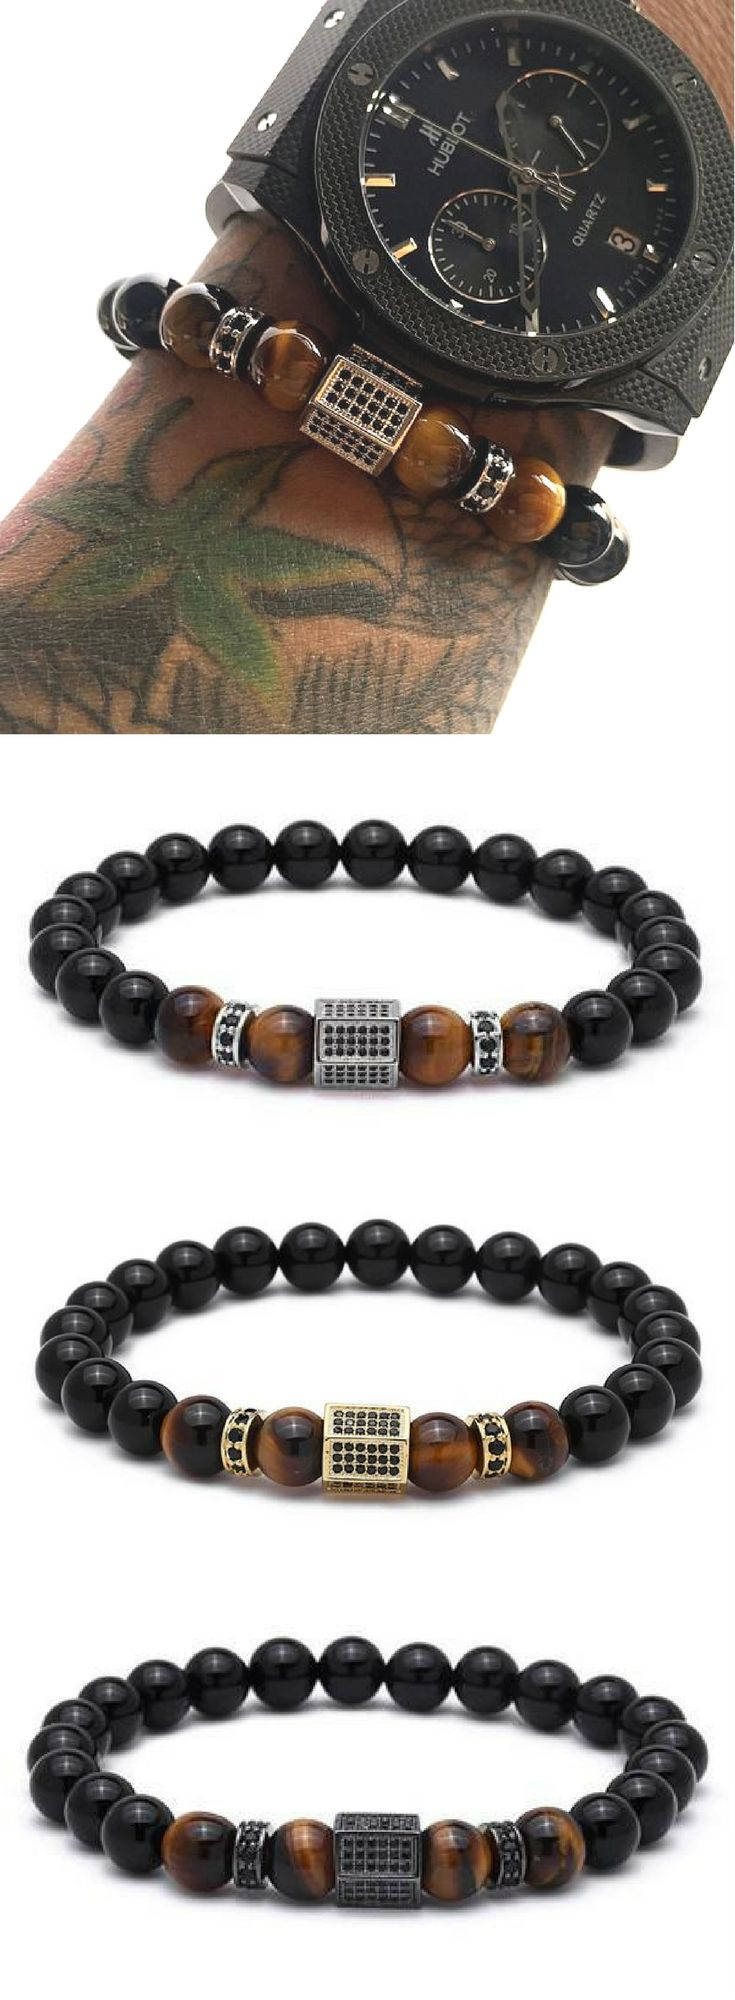 Mens bead bracelet. Tiger stone beaded bracelet in 4 colors. With Free worldwide shipping.